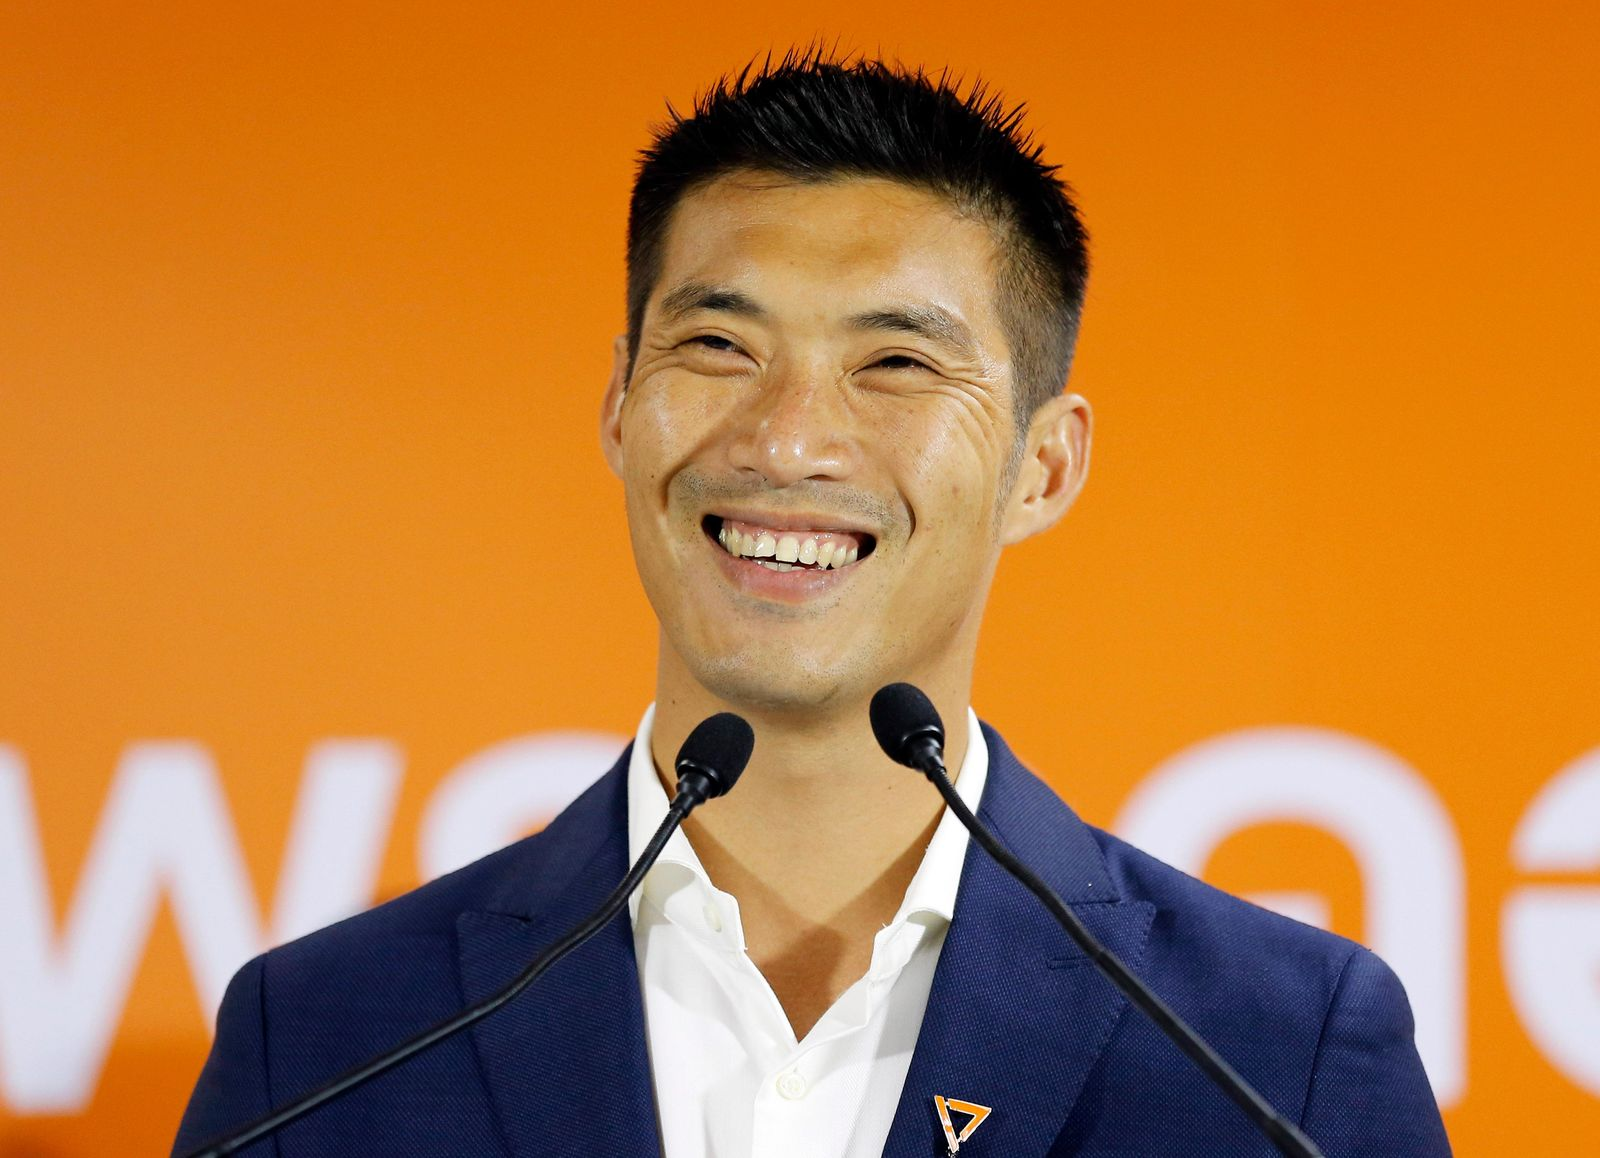 Future Forward Party leader Thanathorn Juangroongruangkit smiles during a press conference at the party headquarters in Bangkok, Thailand, Monday, March 25, 2019. The Election Commission announced the results of 350 constituency races but full vote counts, which are needed to determine the allocation of 150 other seats in the House of Representatives, won't be available until Friday. (AP Photo/Sakchai Lalit)